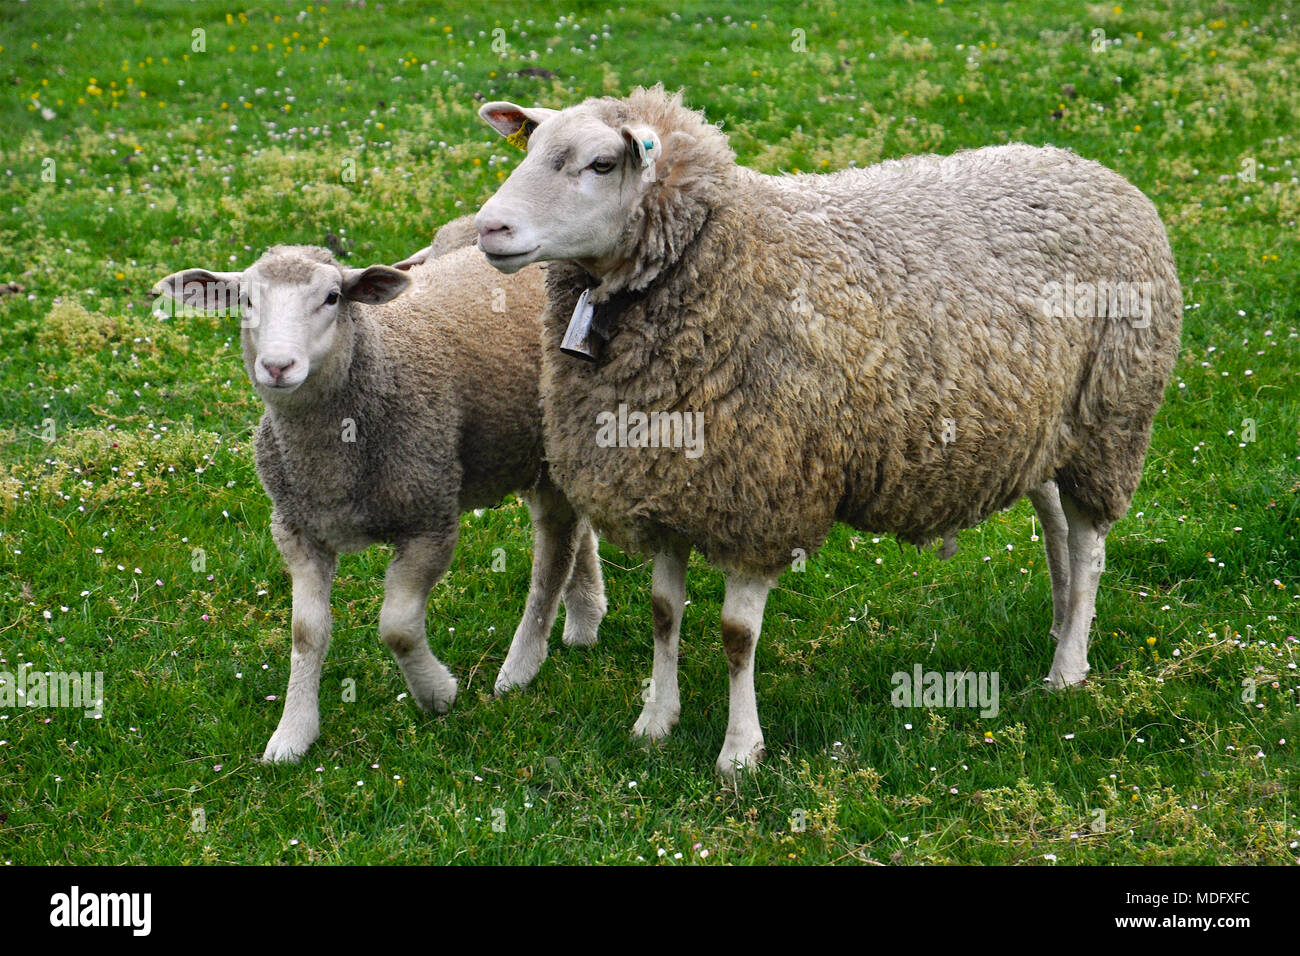 Sheep with a lamb in a green field in San Martín de Laspra (Castrillón, Asturias, Spain) - Stock Image